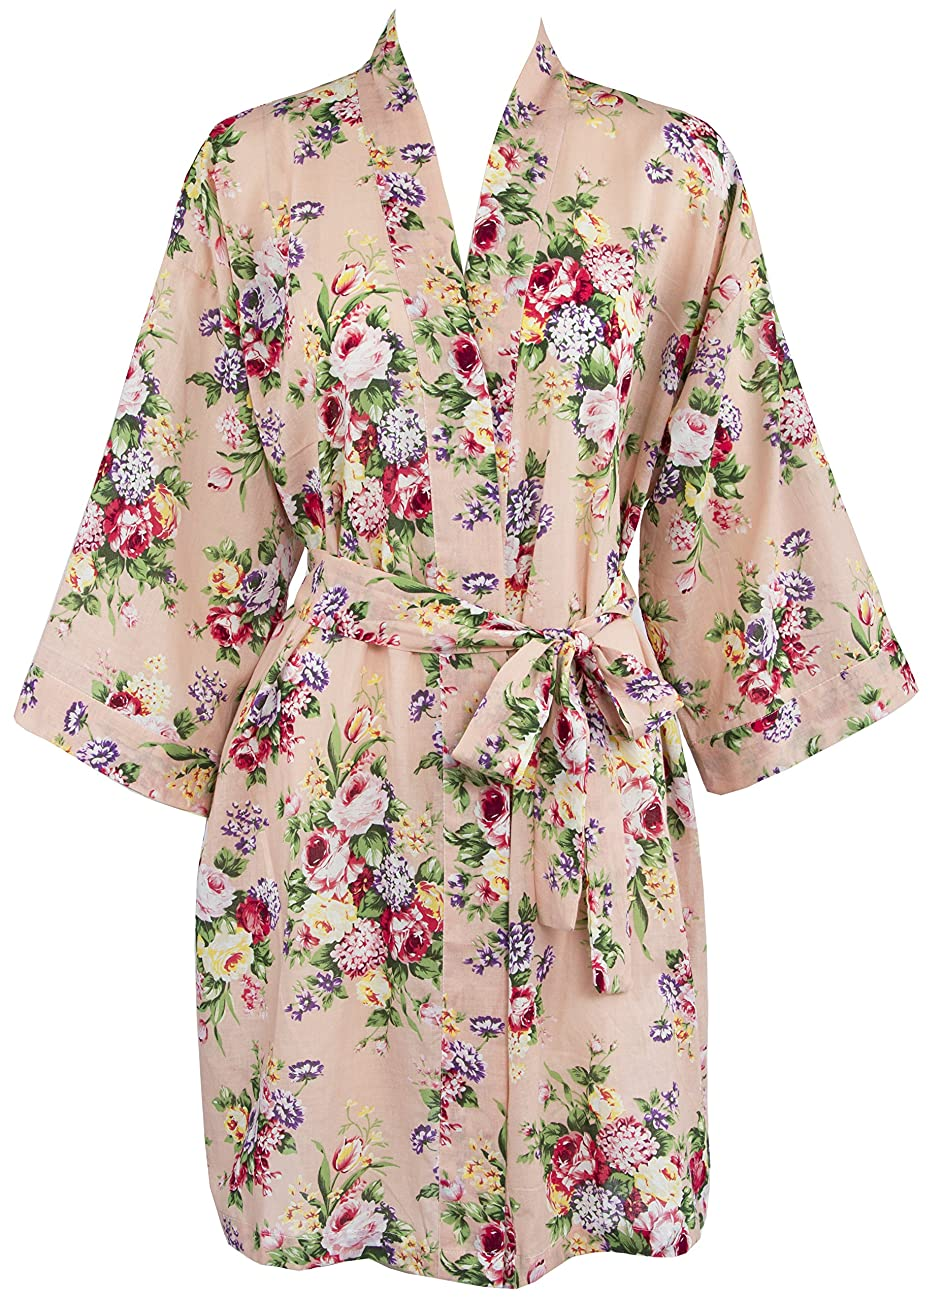 Leisureland Women's Cotton Lightweight Short Kimono Robe Vintage Floral 36